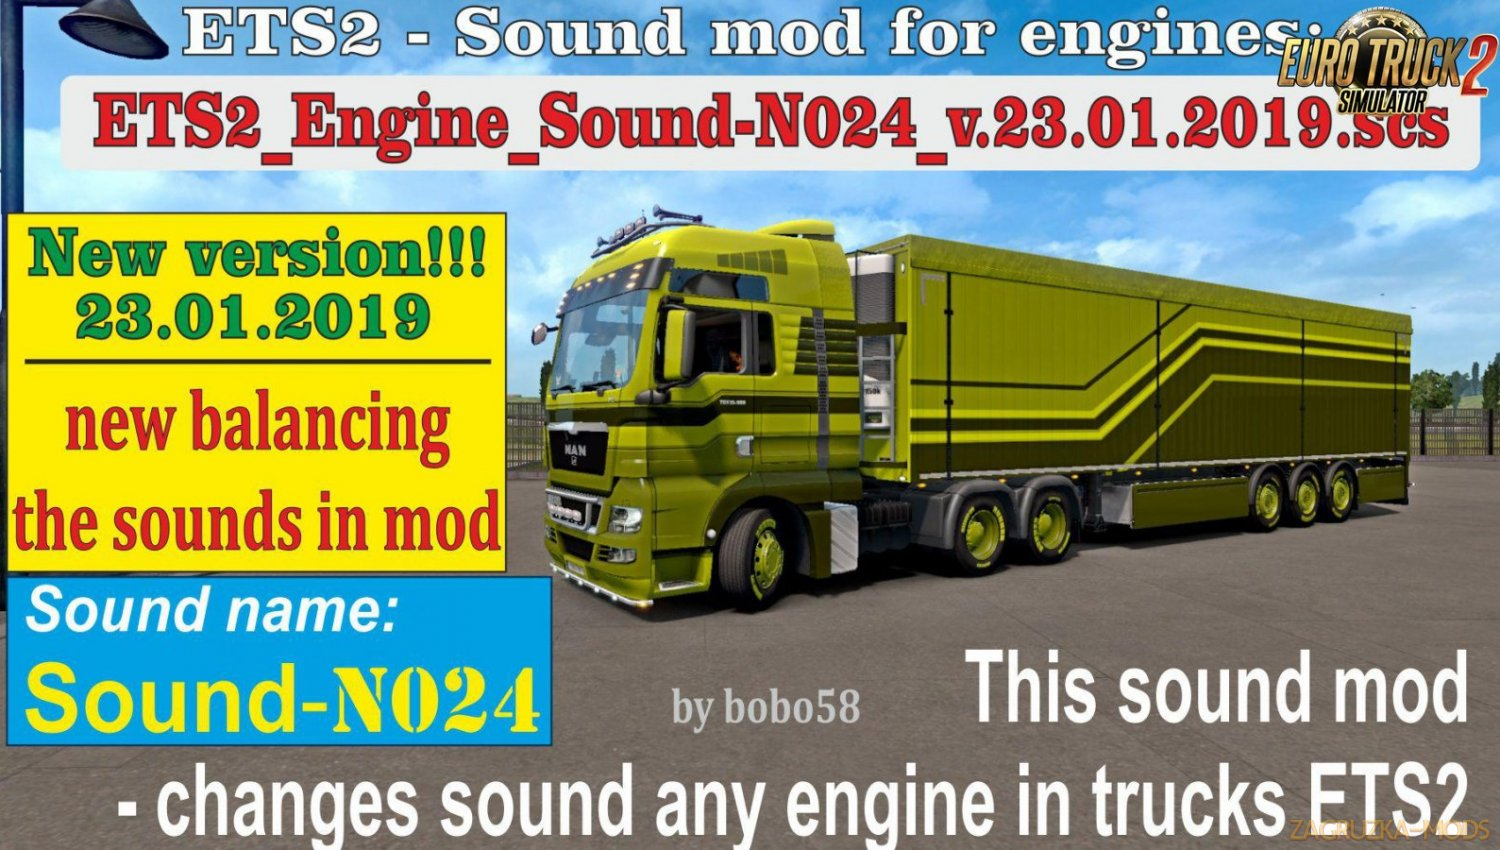 Engine Sound N024 for Ets2